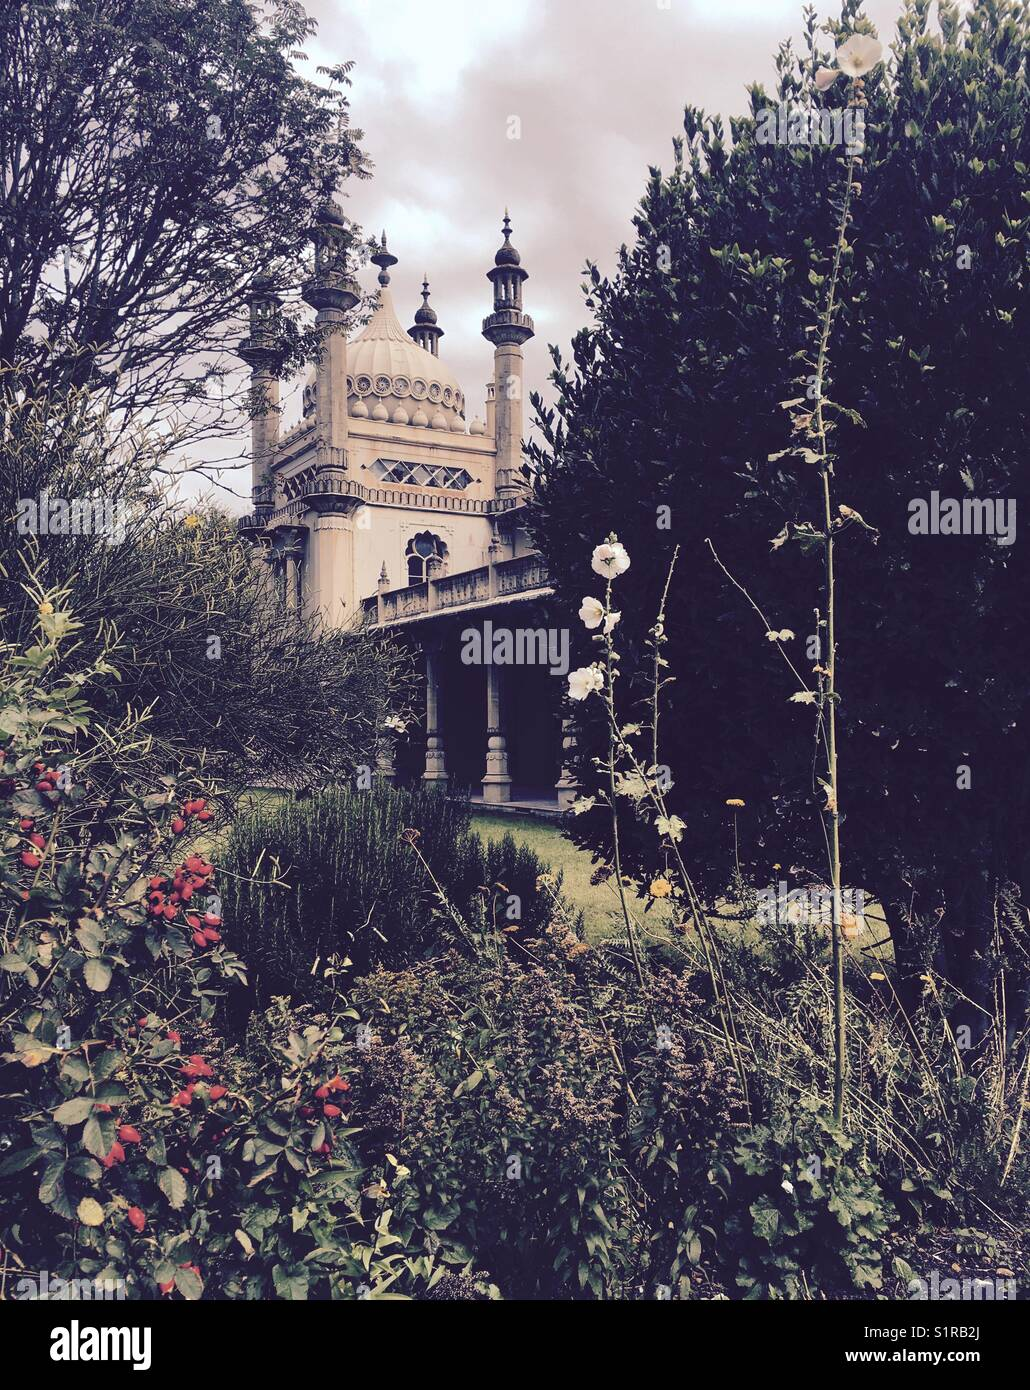 Brighton - the garden of the Royal Pavillion - Stock Image